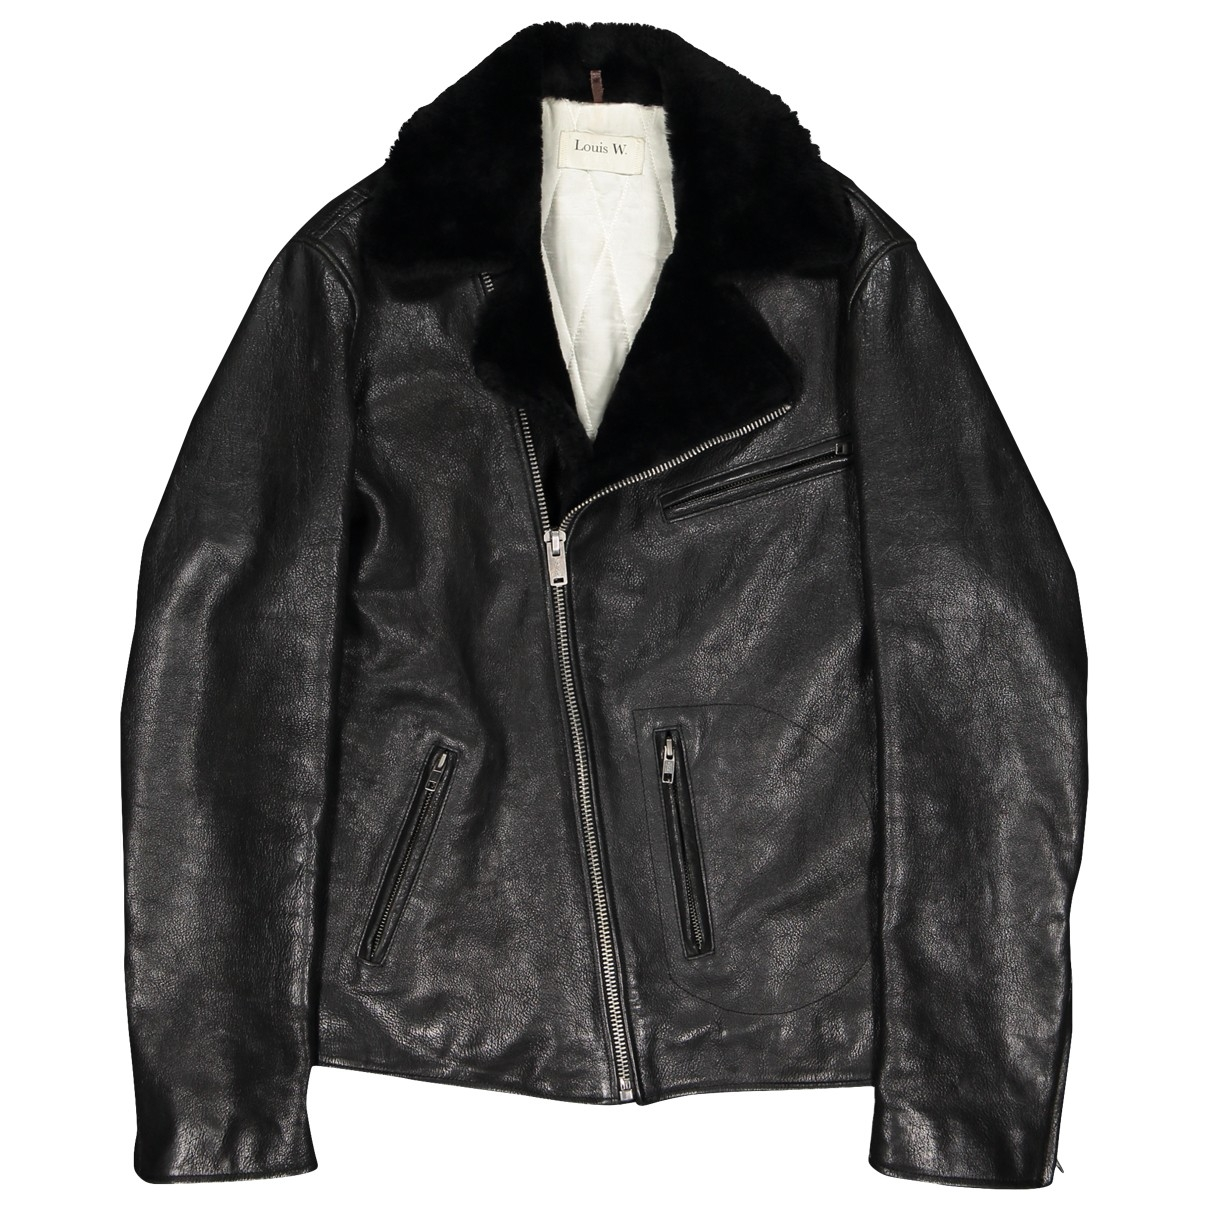 Apc \N Black Leather jacket for Women XXS International